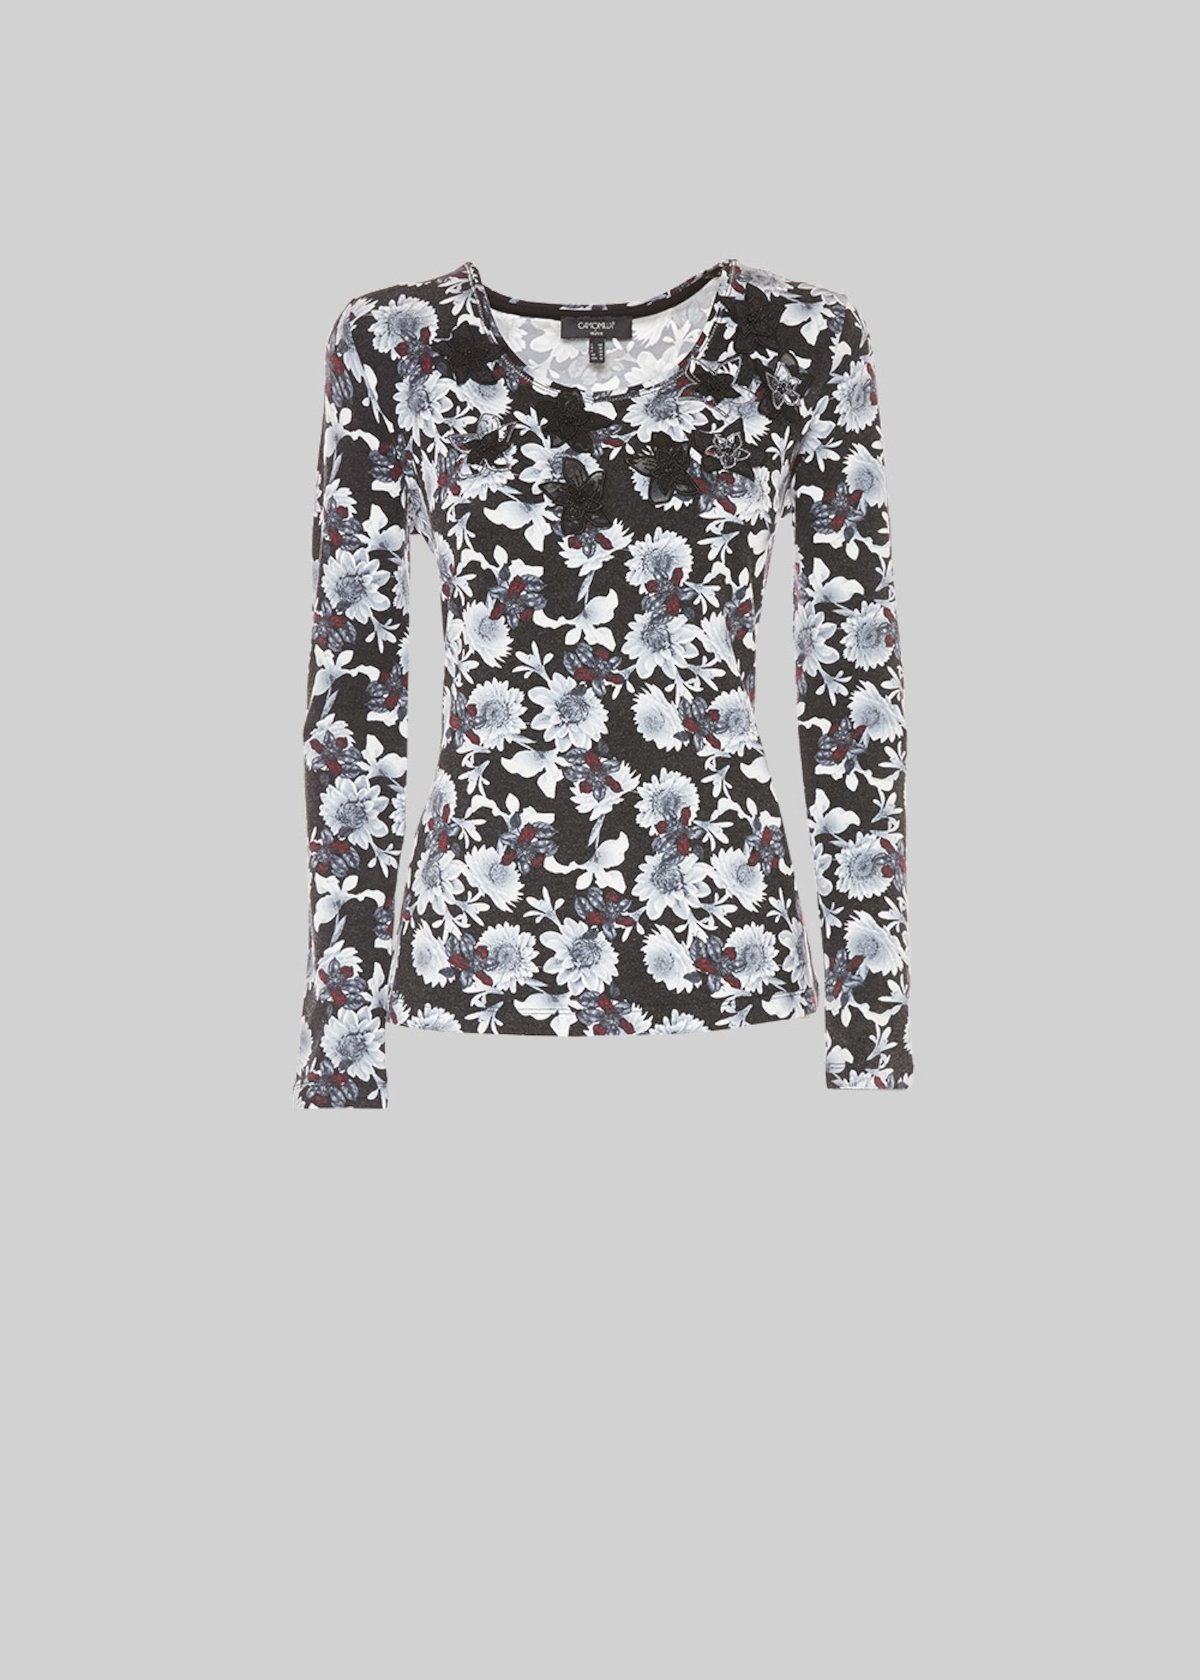 Milky sweater all over print and micro rhinestones